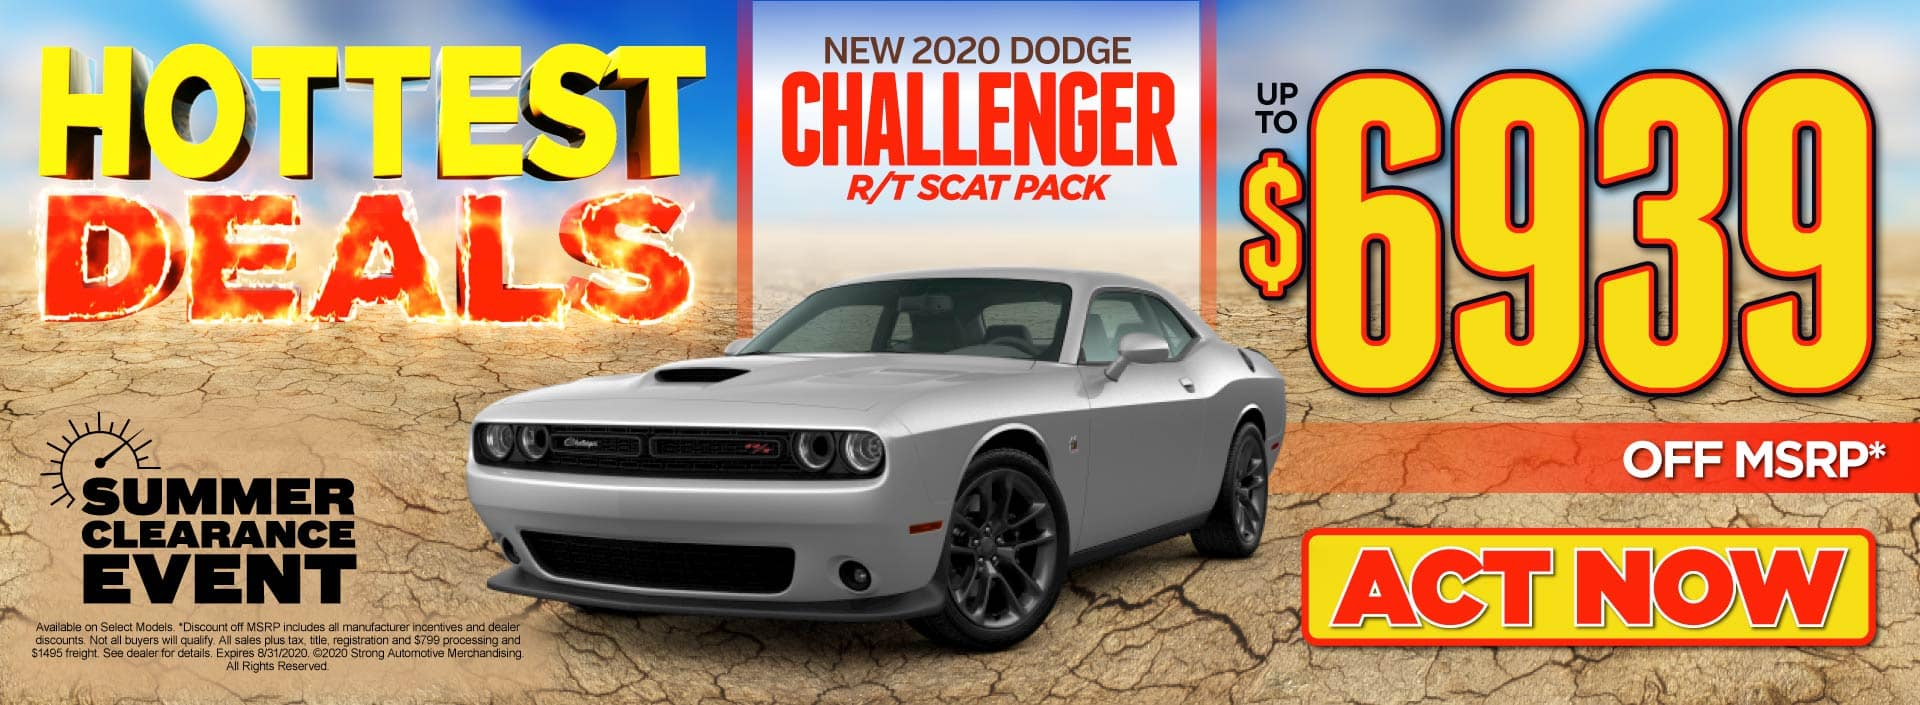 New 2020 Dodge Challenger - up to $6939 off MSRP - Click to View Inventory